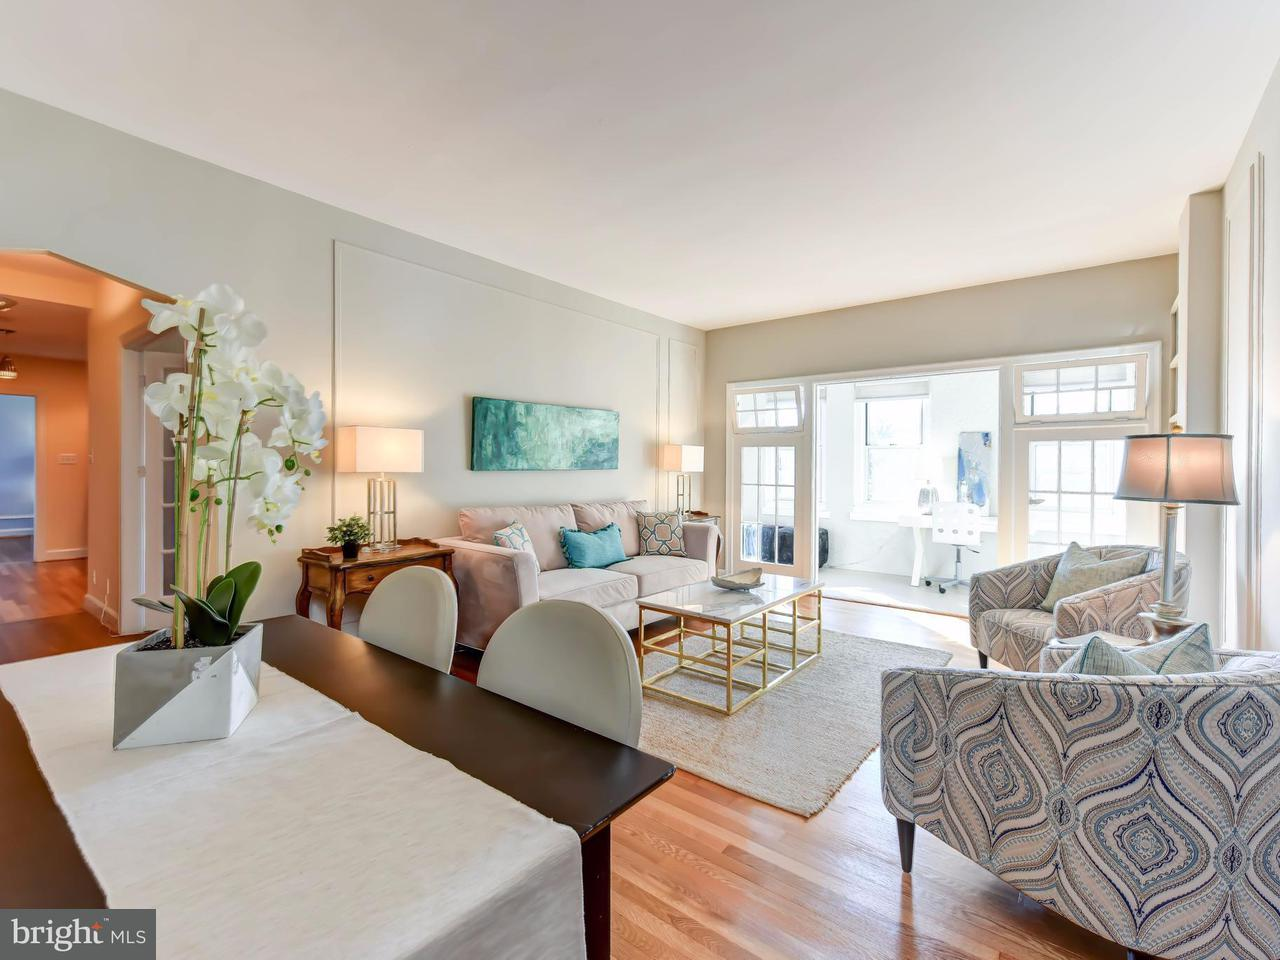 Additional photo for property listing at 3601 Connecticut Ave Nw #517/517a 3601 Connecticut Ave Nw #517/517a Washington, Περιφερεια Τησ Κολουμπια 20008 Ηνωμενεσ Πολιτειεσ